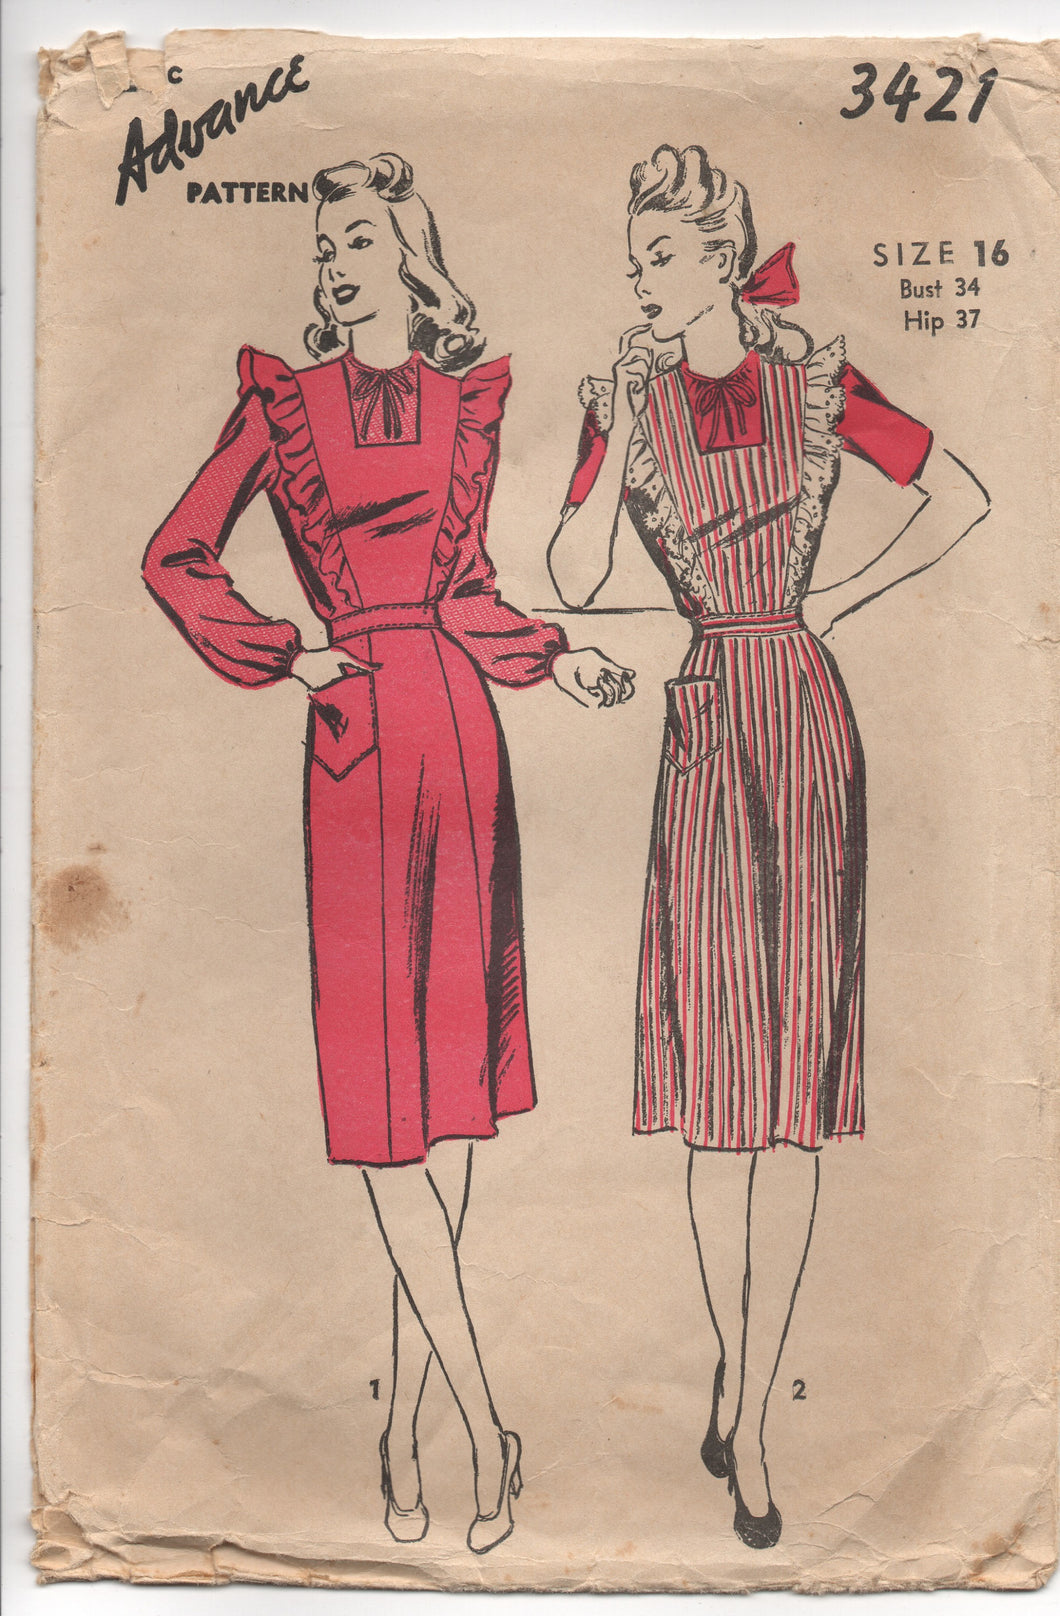 1940's Advance Pinafore Dress with Contrasting Sleeves - Bust 34